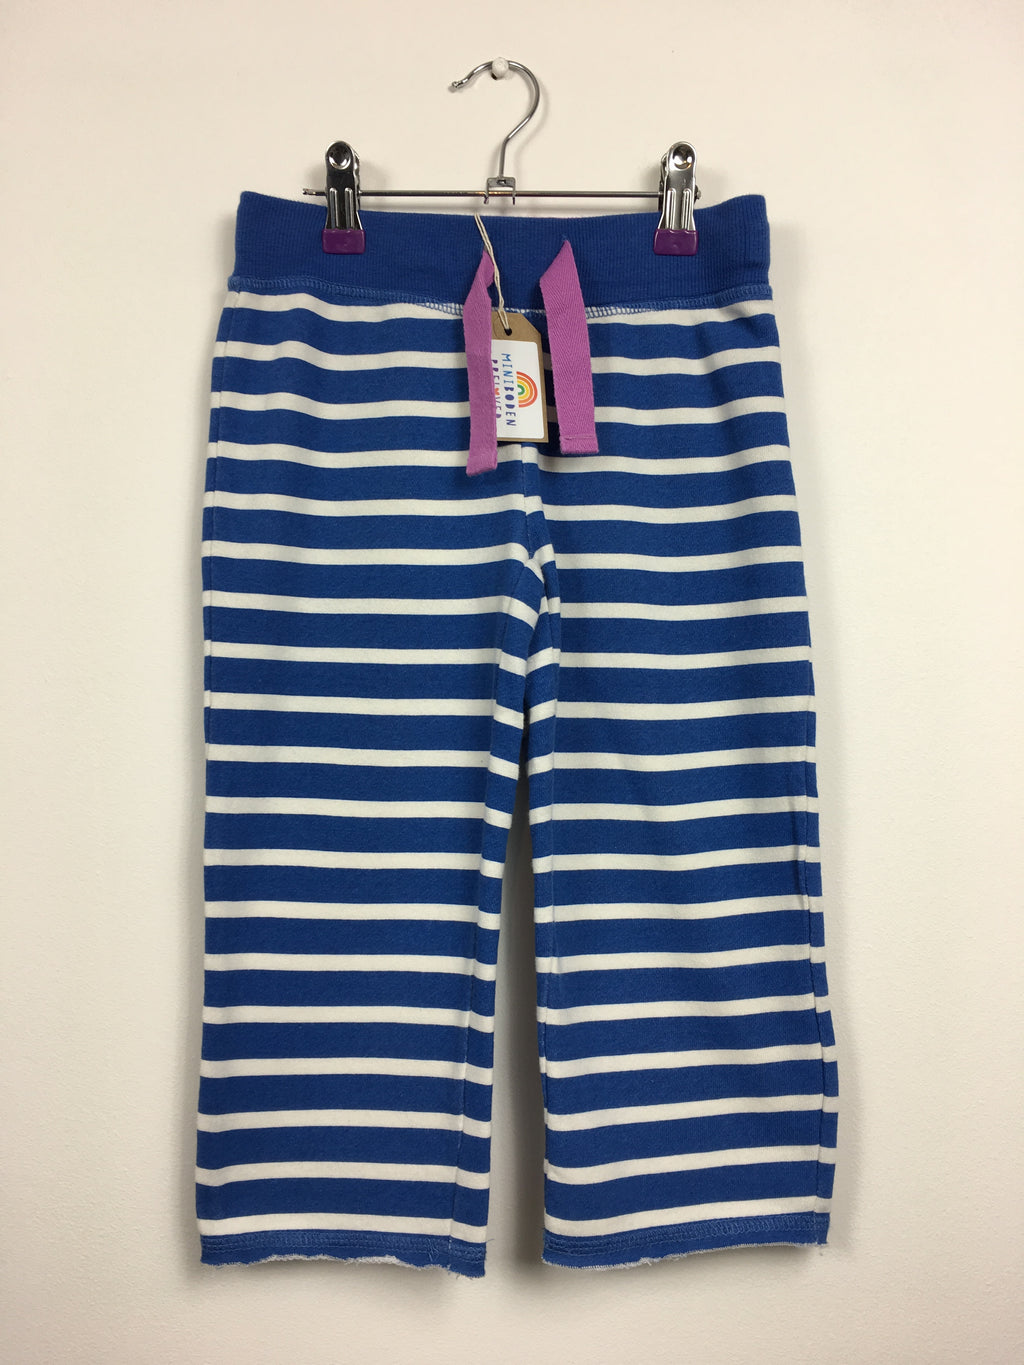 Blue Stripey Long Jogger Shorts (7 Years)